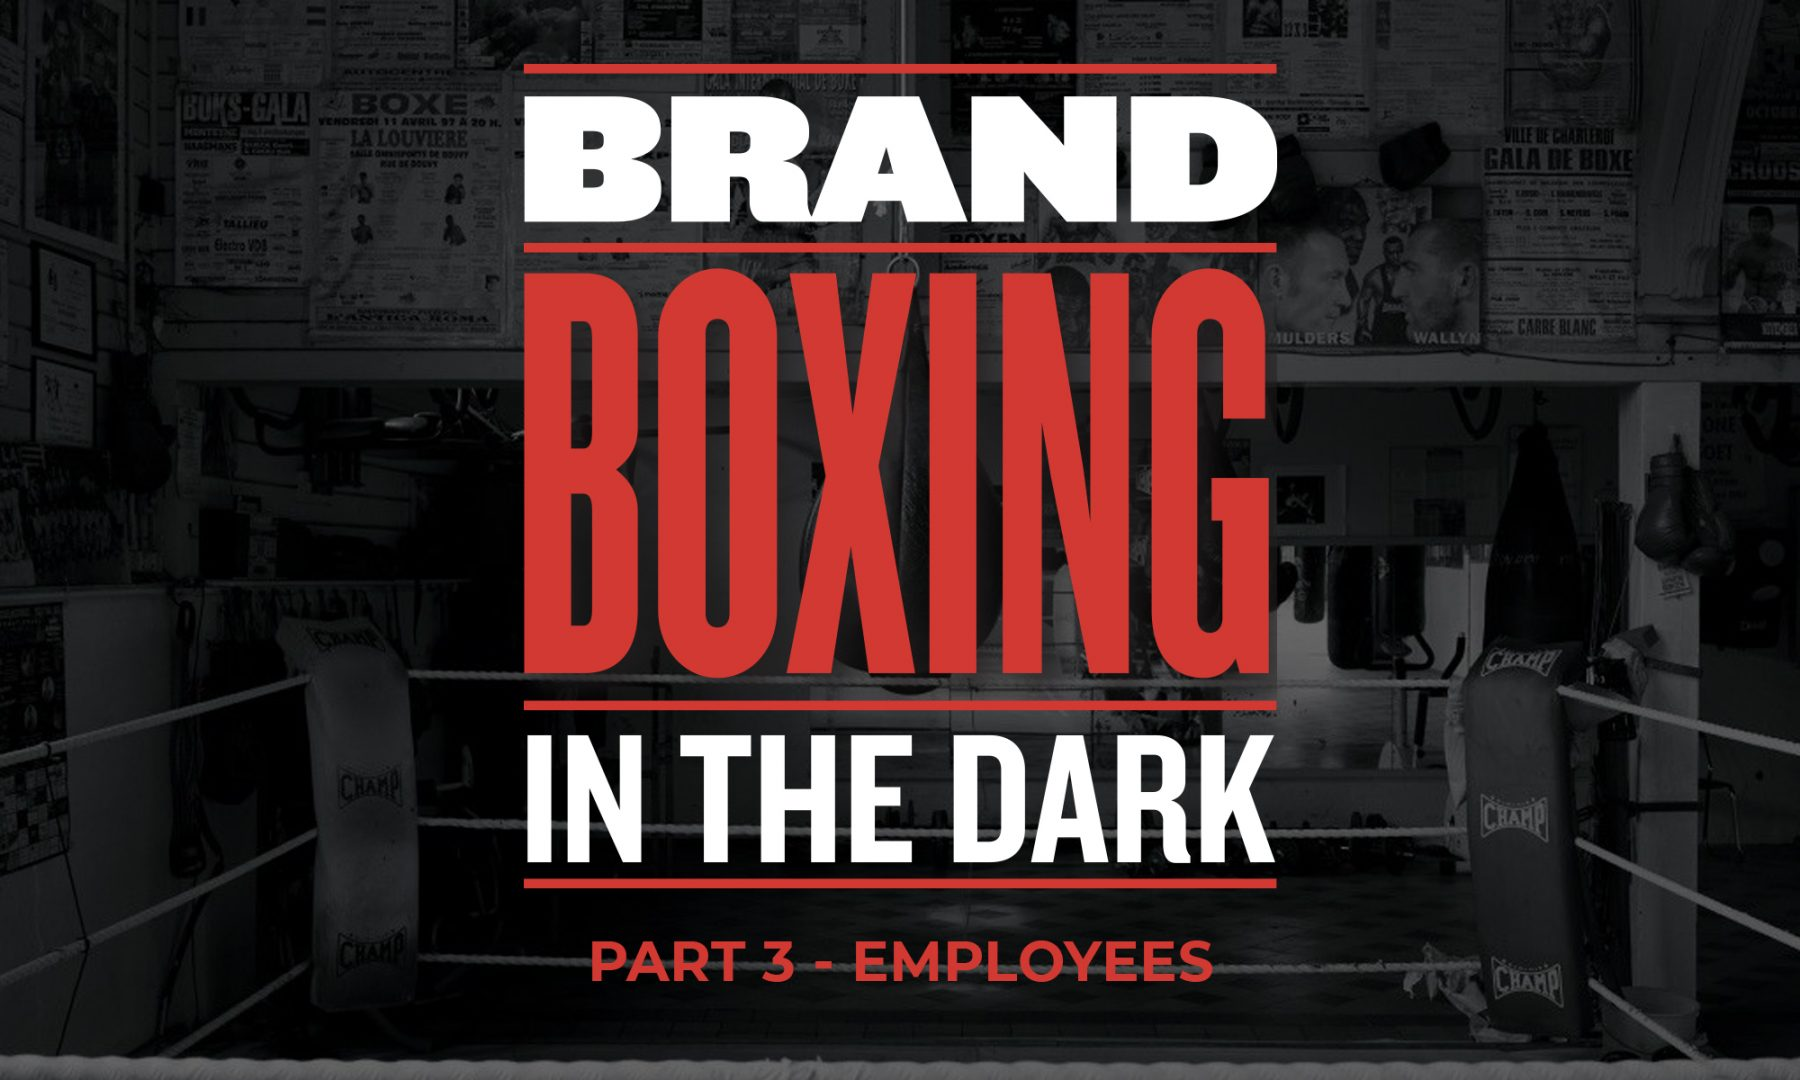 Rebrand Boxing in the dark - Employees